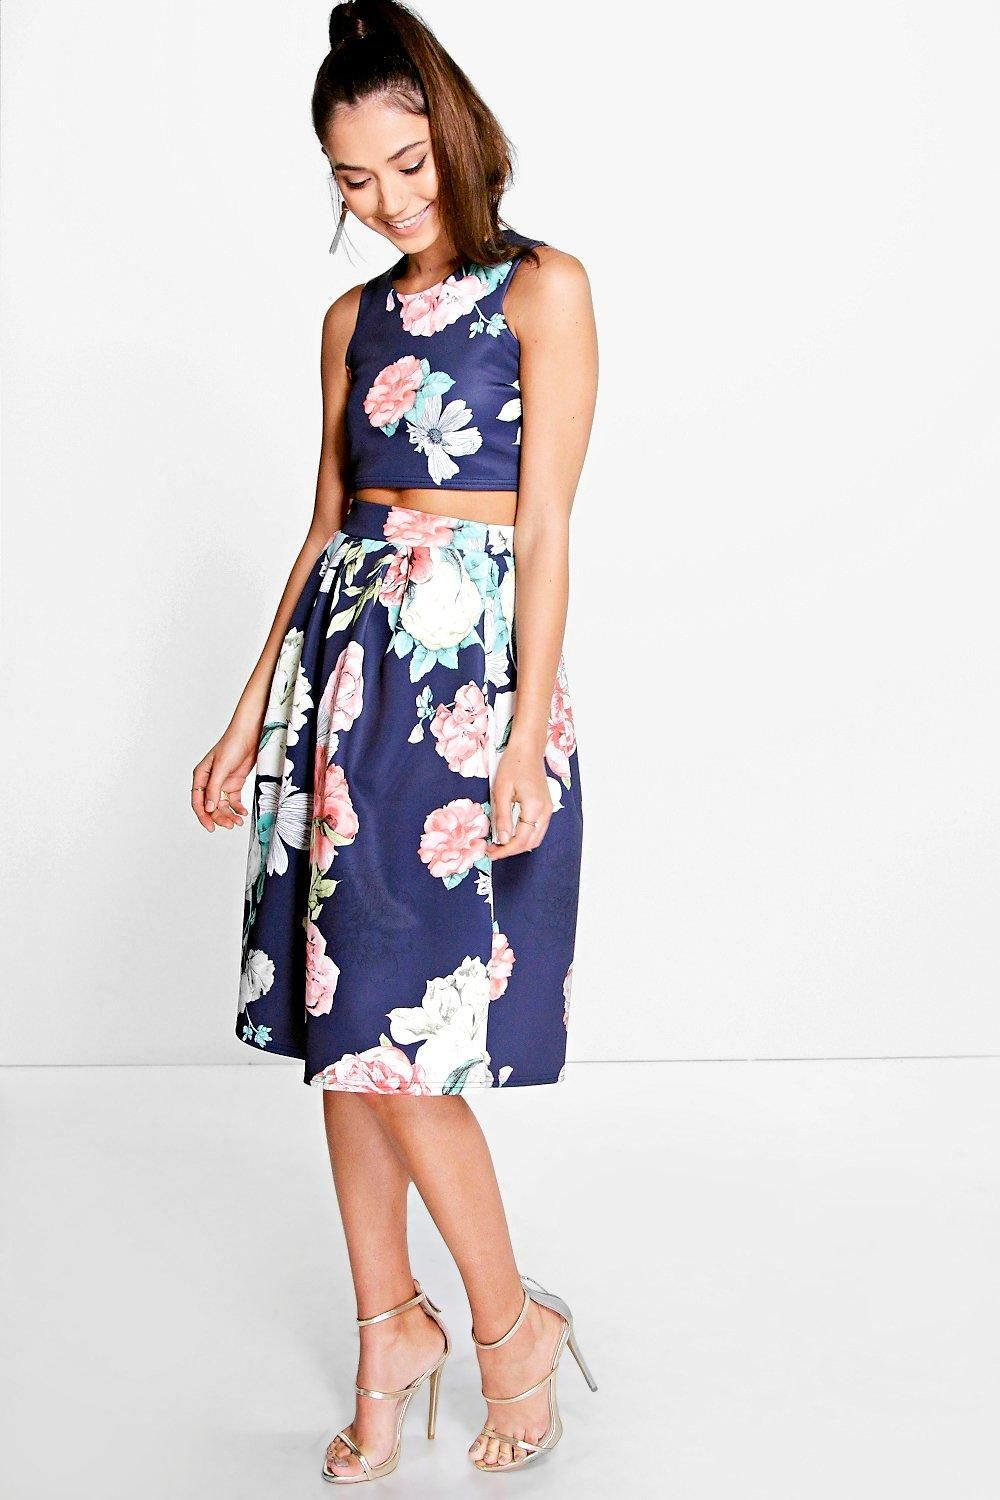 Visa Floral Box Pleat Midi Skirt Co-Ord Set | Midi skirts, Box ...